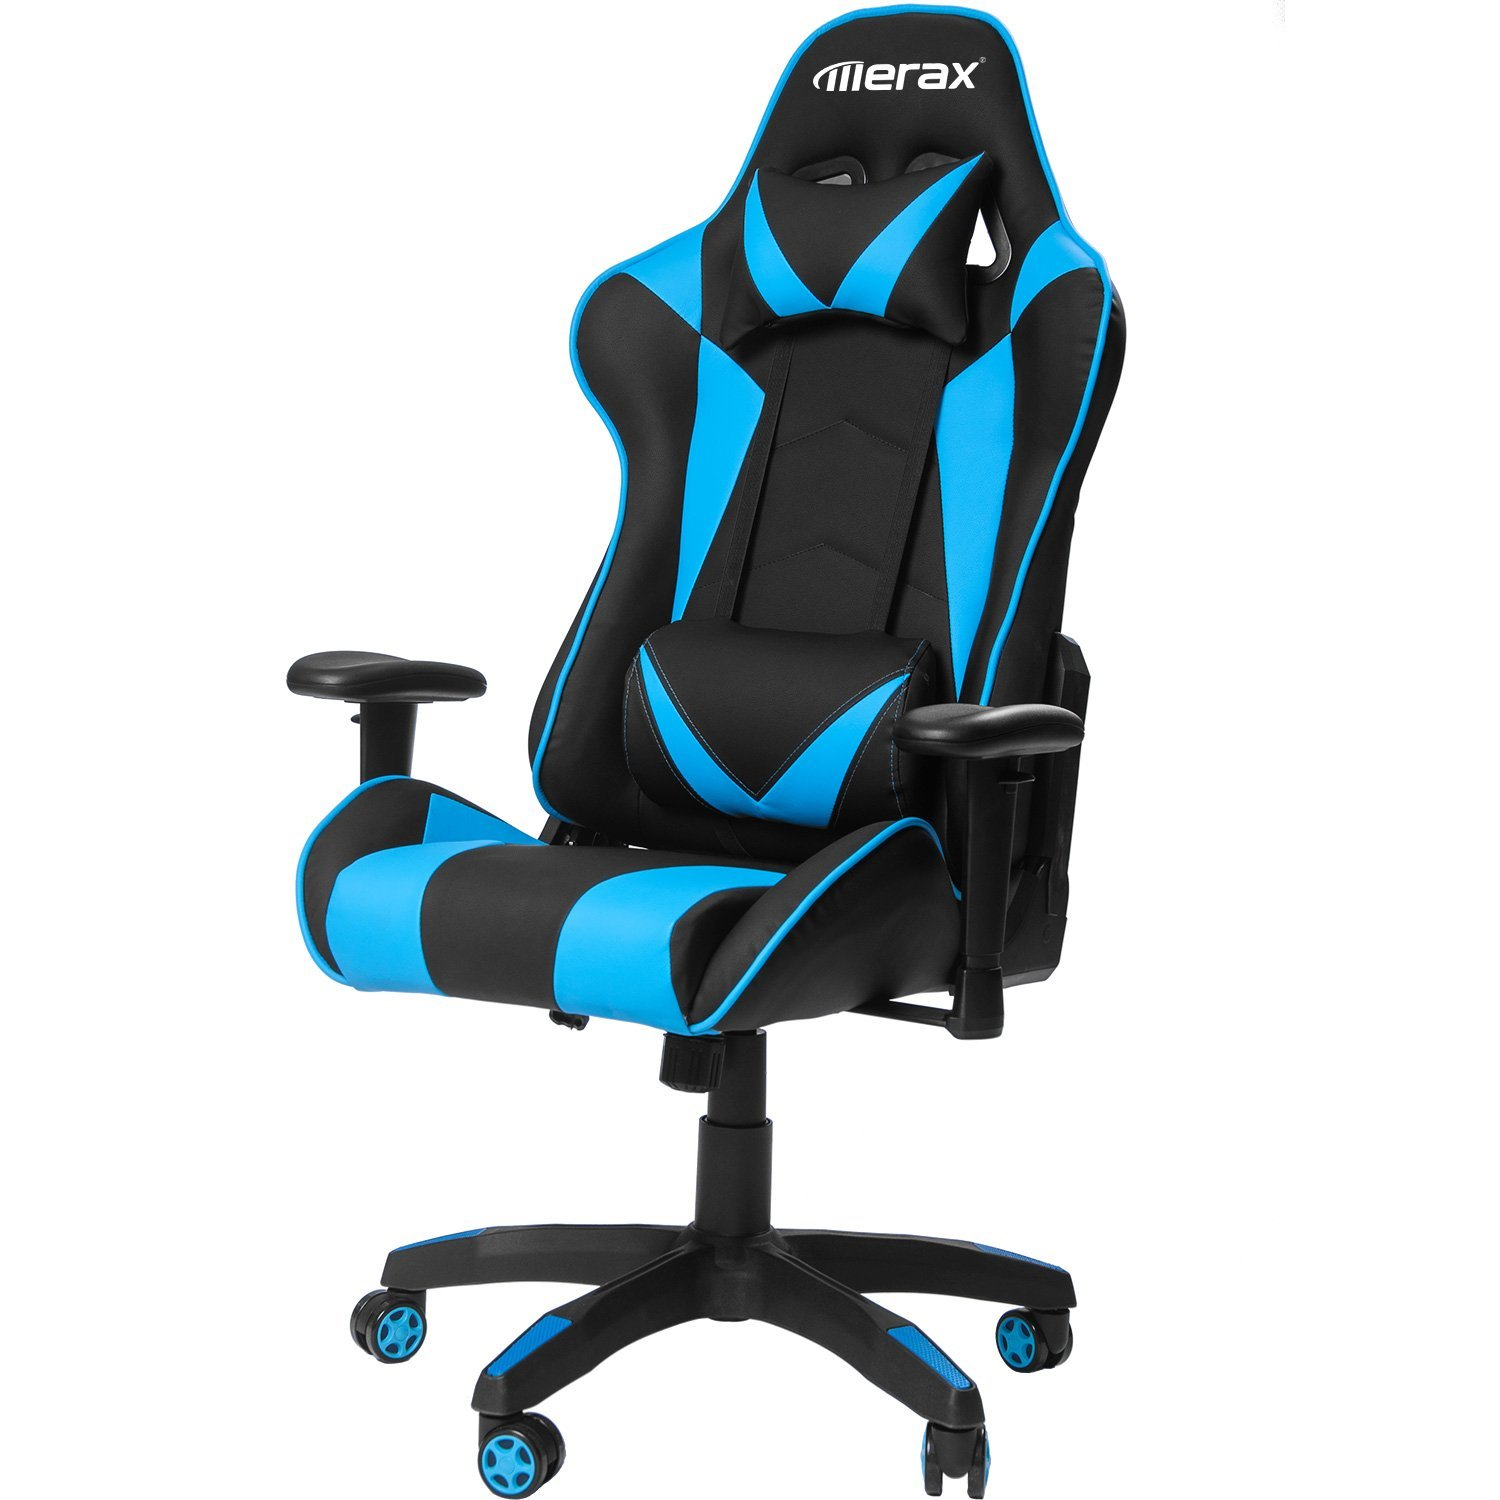 best cheap gaming chairs merax ergonomics review rh officechairexpert com